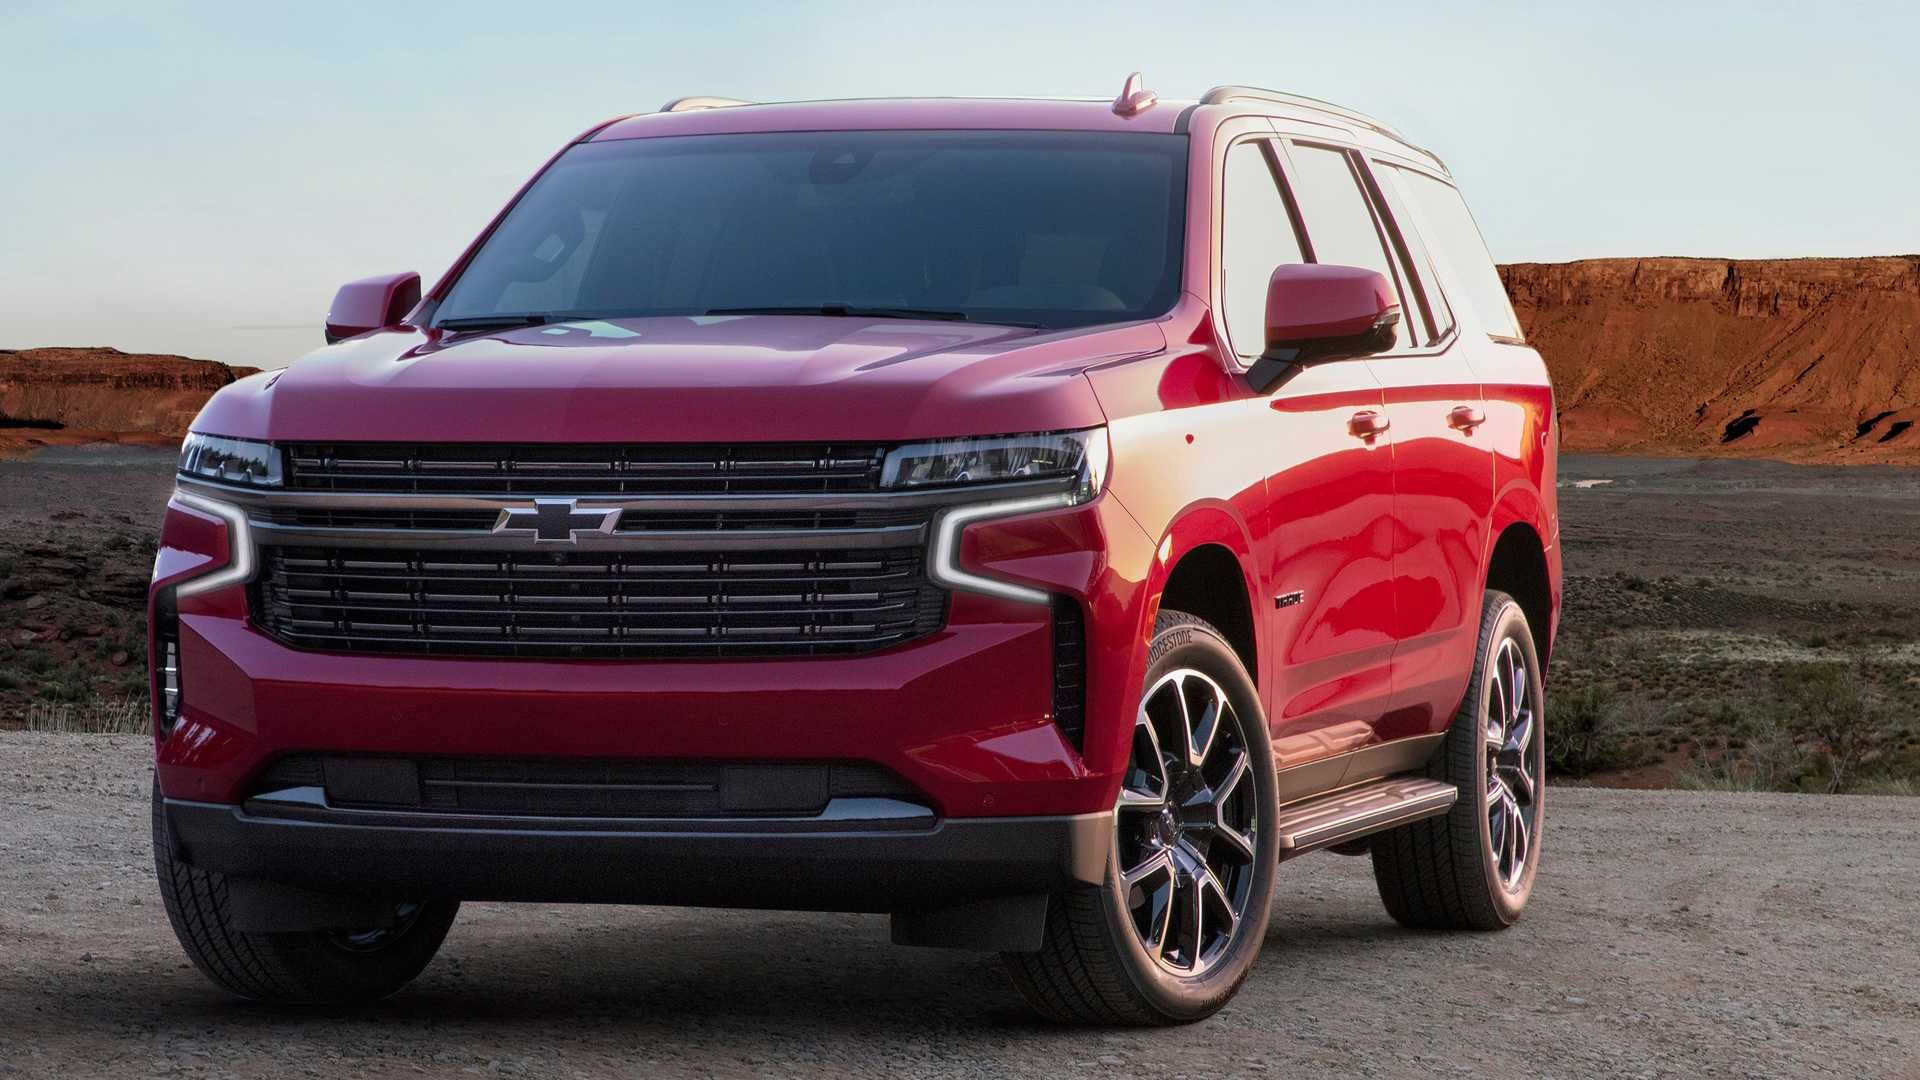 2020 Chevy Tahoe The 2020 Chevy Tahoe And Its Distinction For Unsullied Reliability Enable It To Be A Powerful C In 2020 Chevrolet Suburban Chevy Tahoe Chevrolet Tahoe